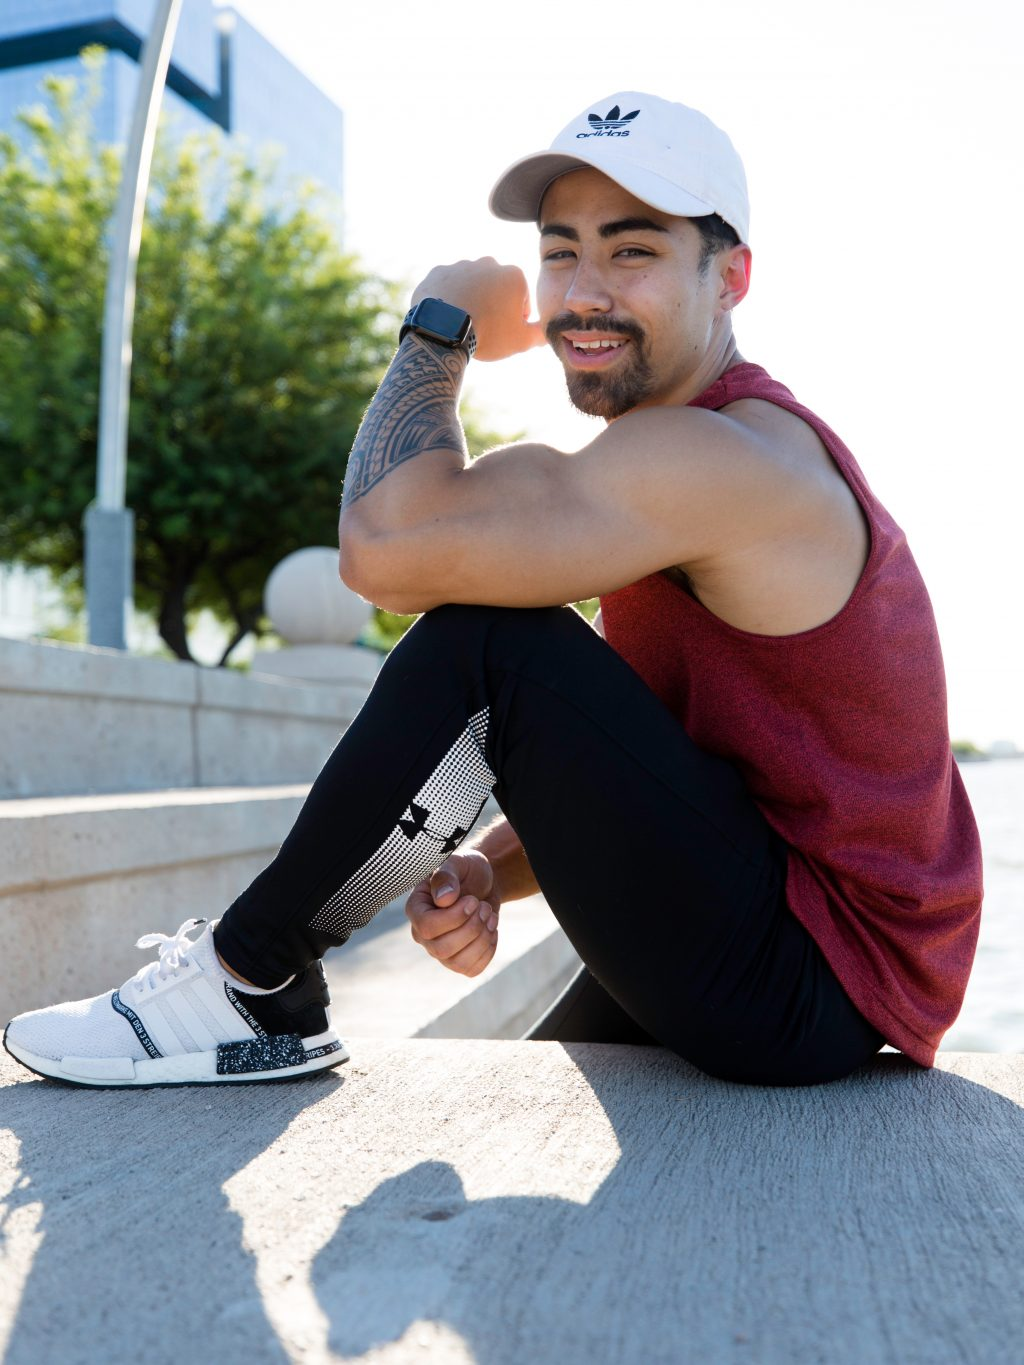 Personal Trainer Phoenix, Arizona - Jared E